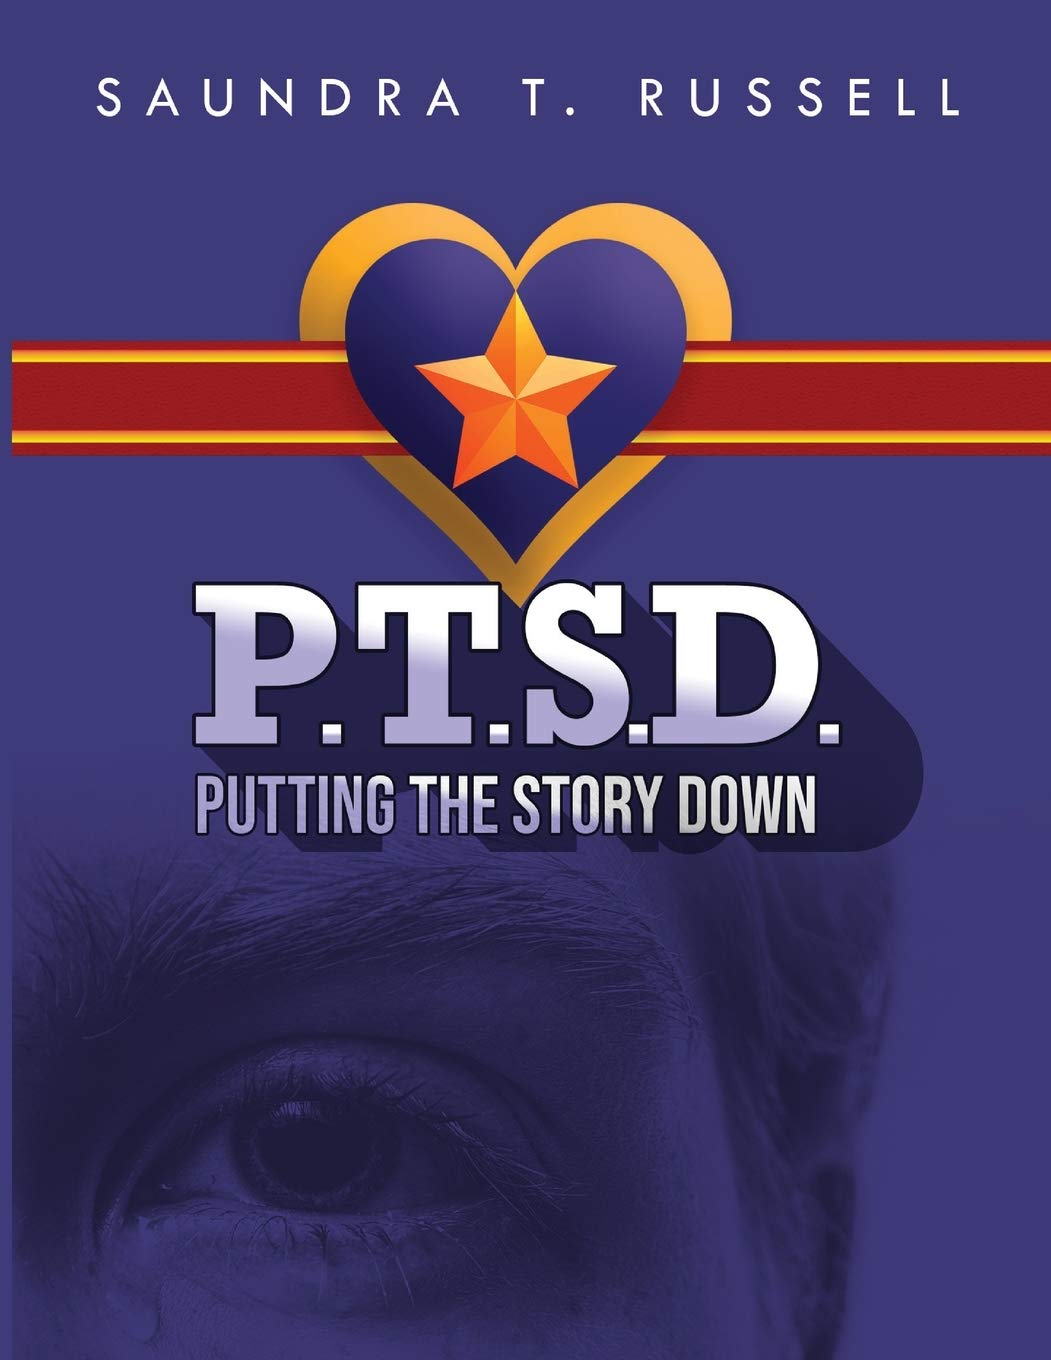 """Poet Saundra Russell's Poetry Self-Help Poetry Workbook, """"Putting The Story Down,"""" is hopefully a Form of Relief for PTSD Survivors."""